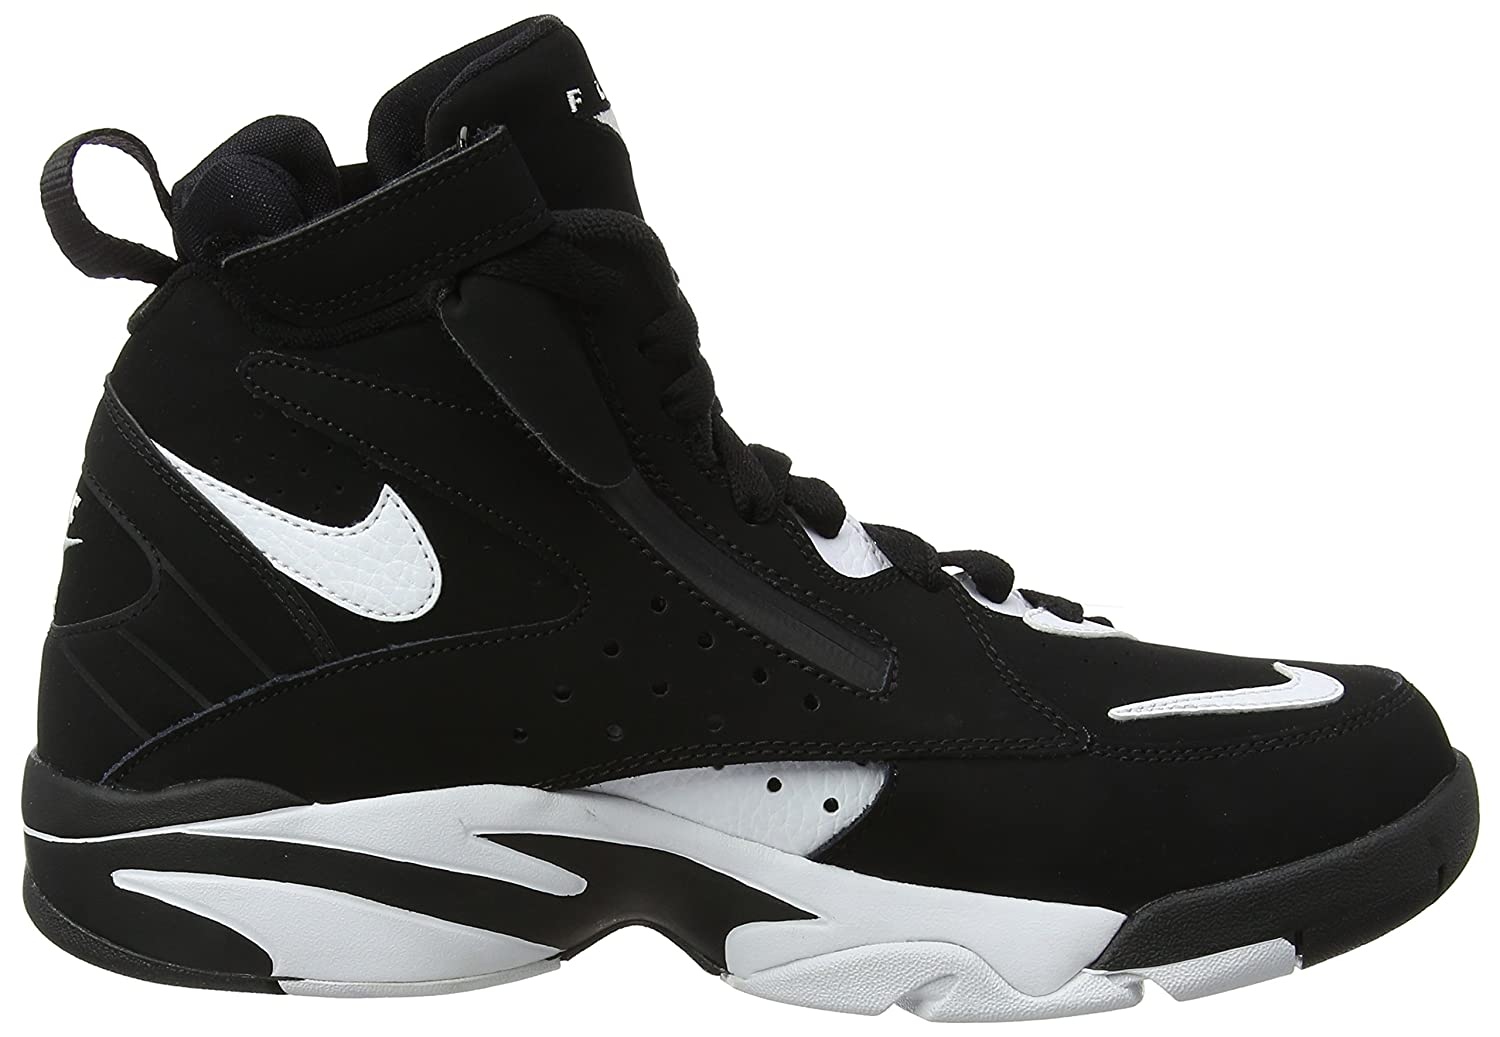 Nike Air Maestro Ii Ltd Chaussures De Basketball Homme Ah8511 Rxpkytcl-121201-9455822 Invigorating Blood Circulation And Stopping Pains Pour Promot